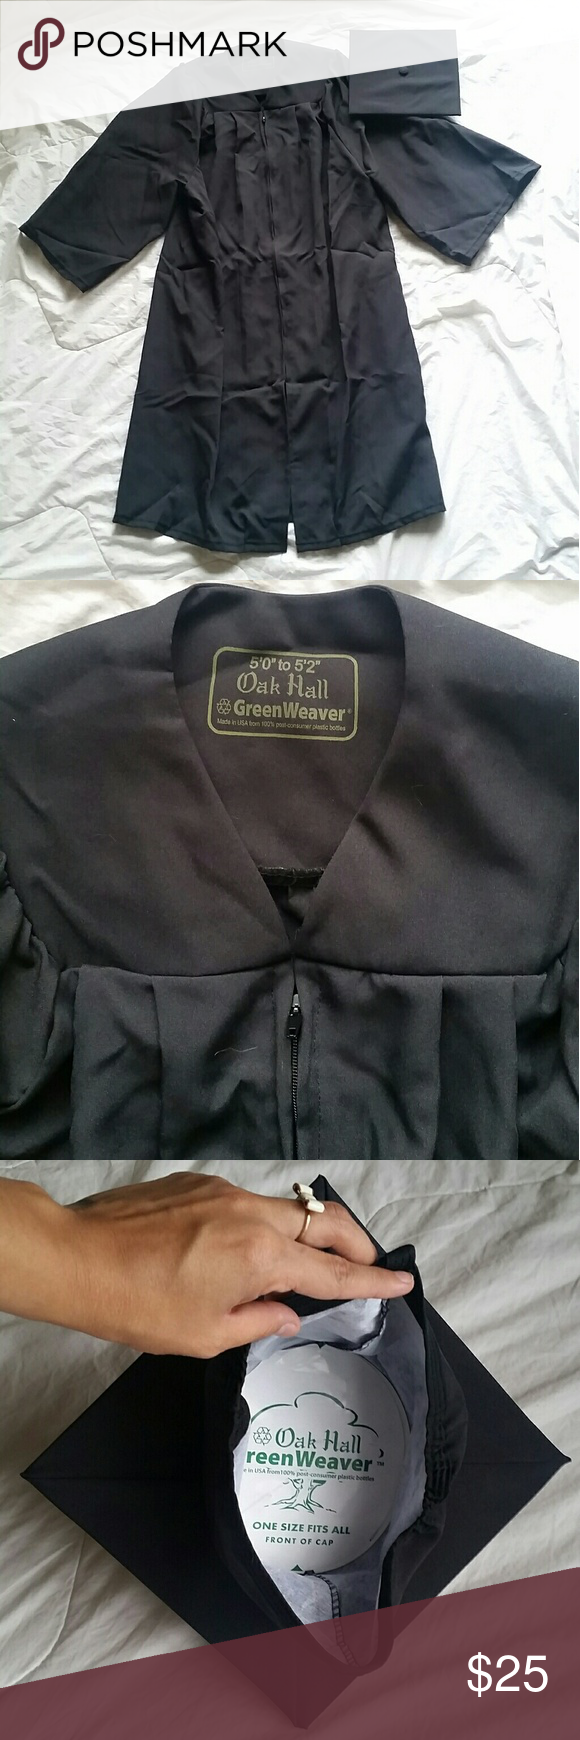 Black Cap and Gown Black Cap and Gown. Worn once. Oak Hall Green ...